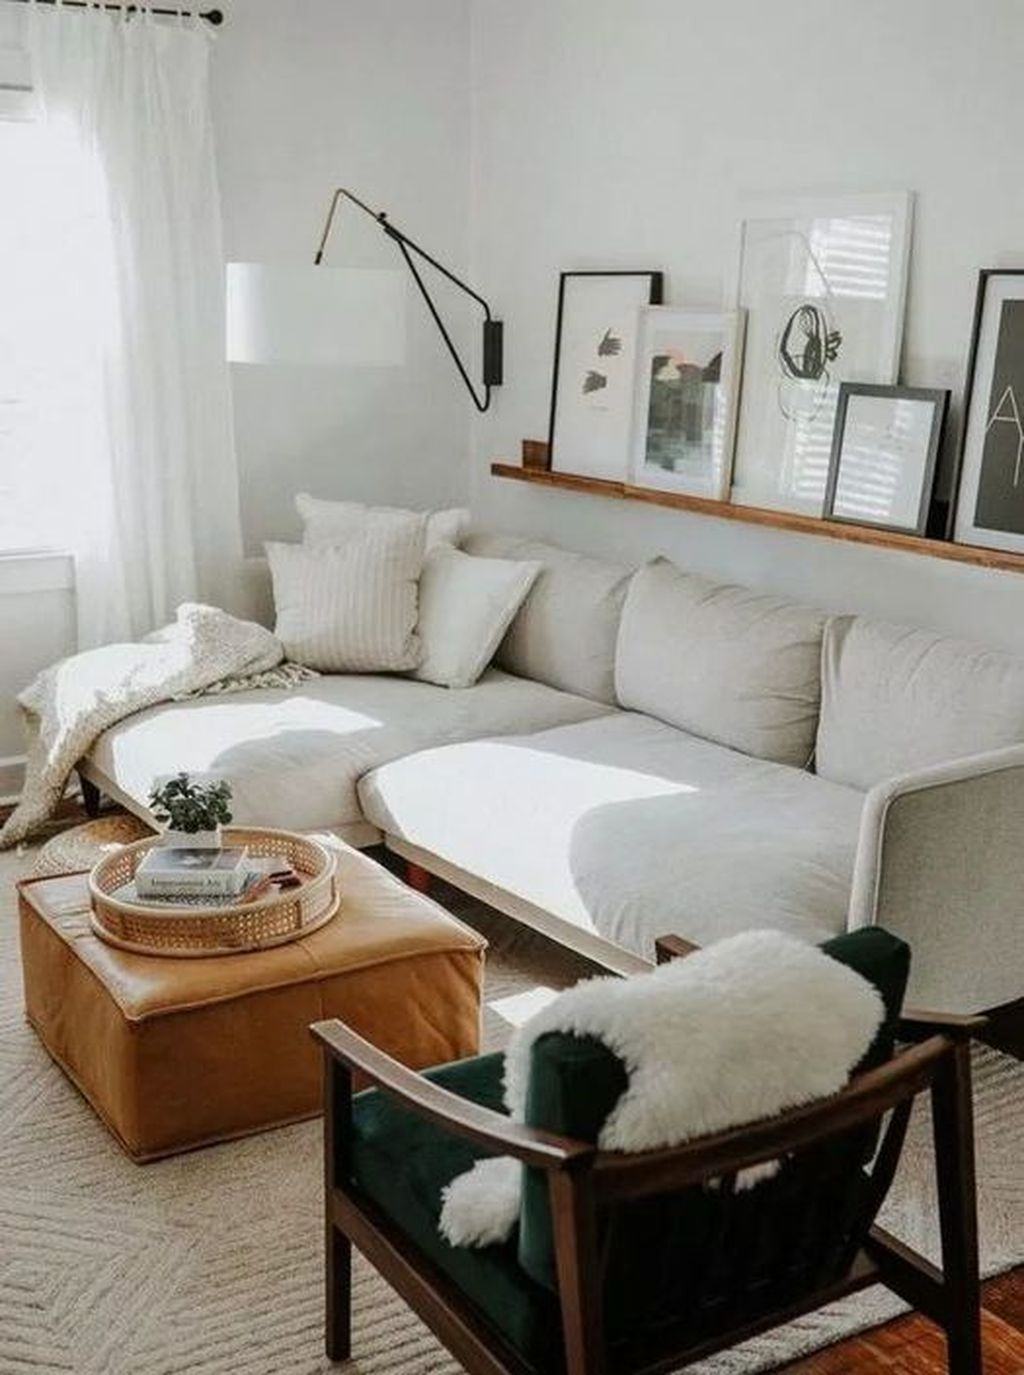 30 Splendid Living Room Design Ideas You Never Seen Before In 2020 Small Living Room Decor Minimalist Living Room Design Small Apartment Living